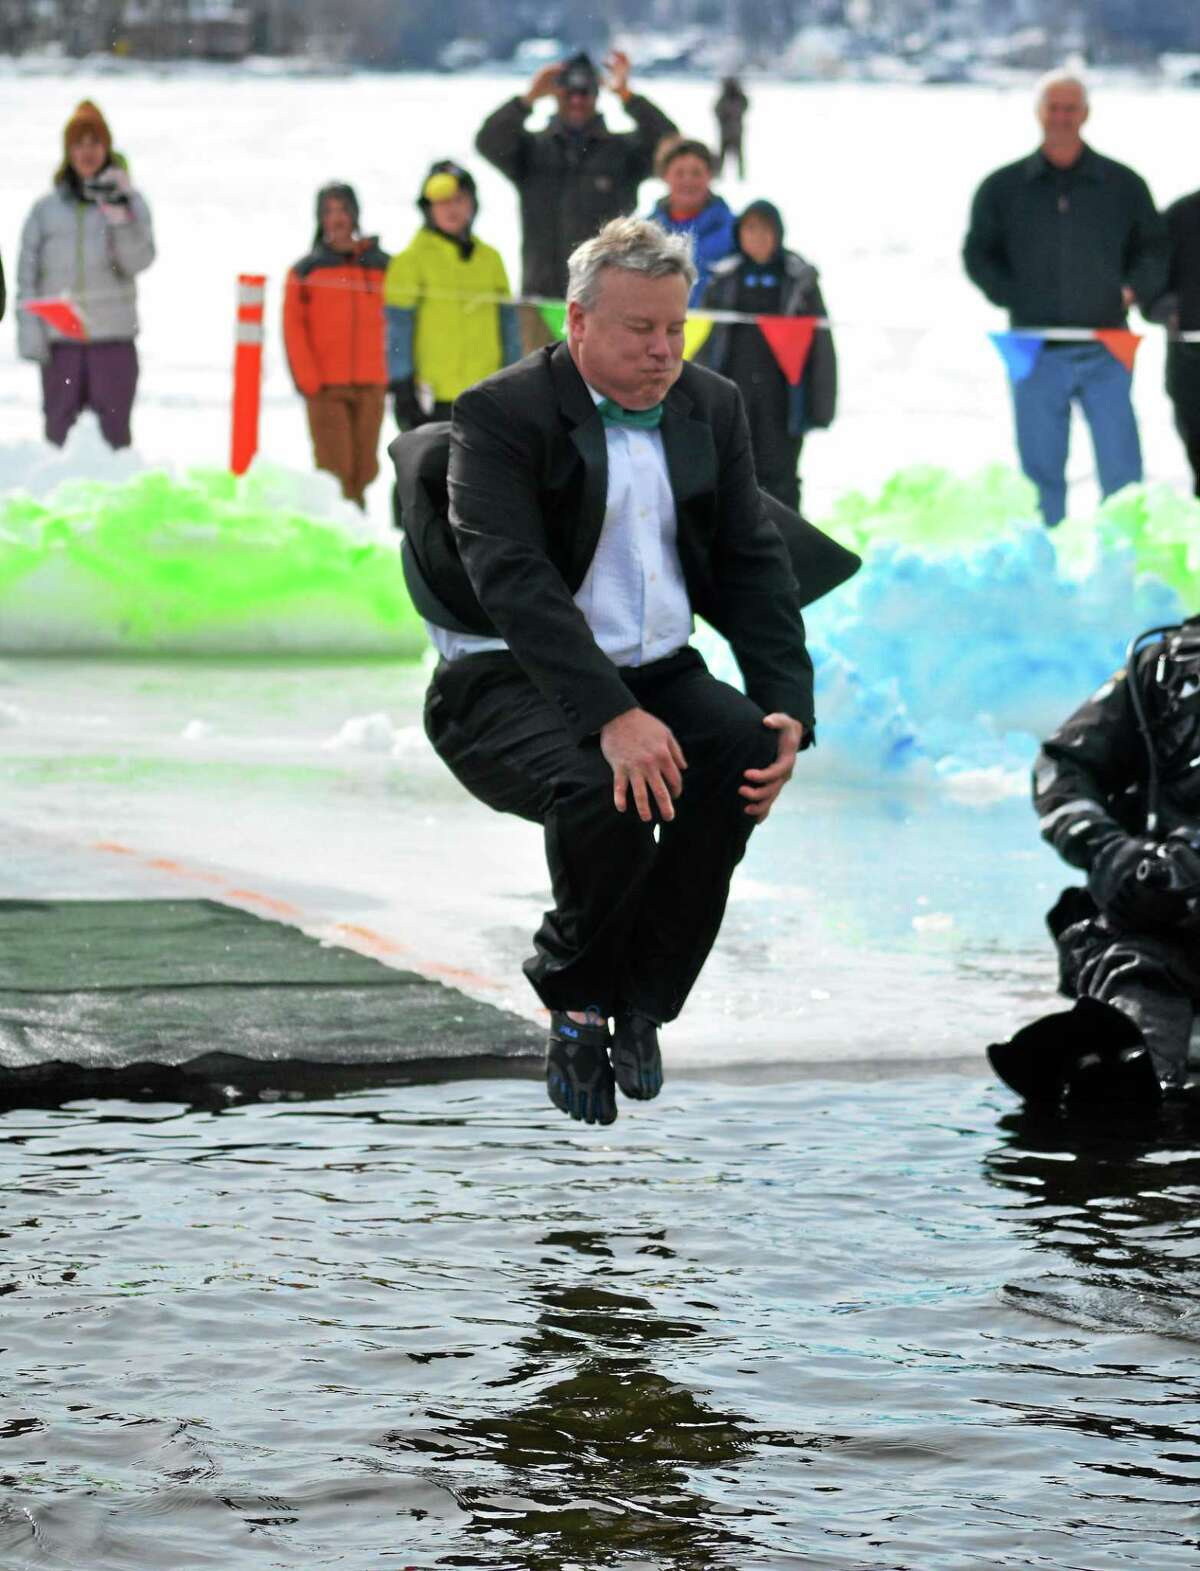 Winsted Town Manager Dale Martin dives into Highland Lake as part of the Penguin Plunge, a fundraiser held annually in Winsted for Special Olympics.